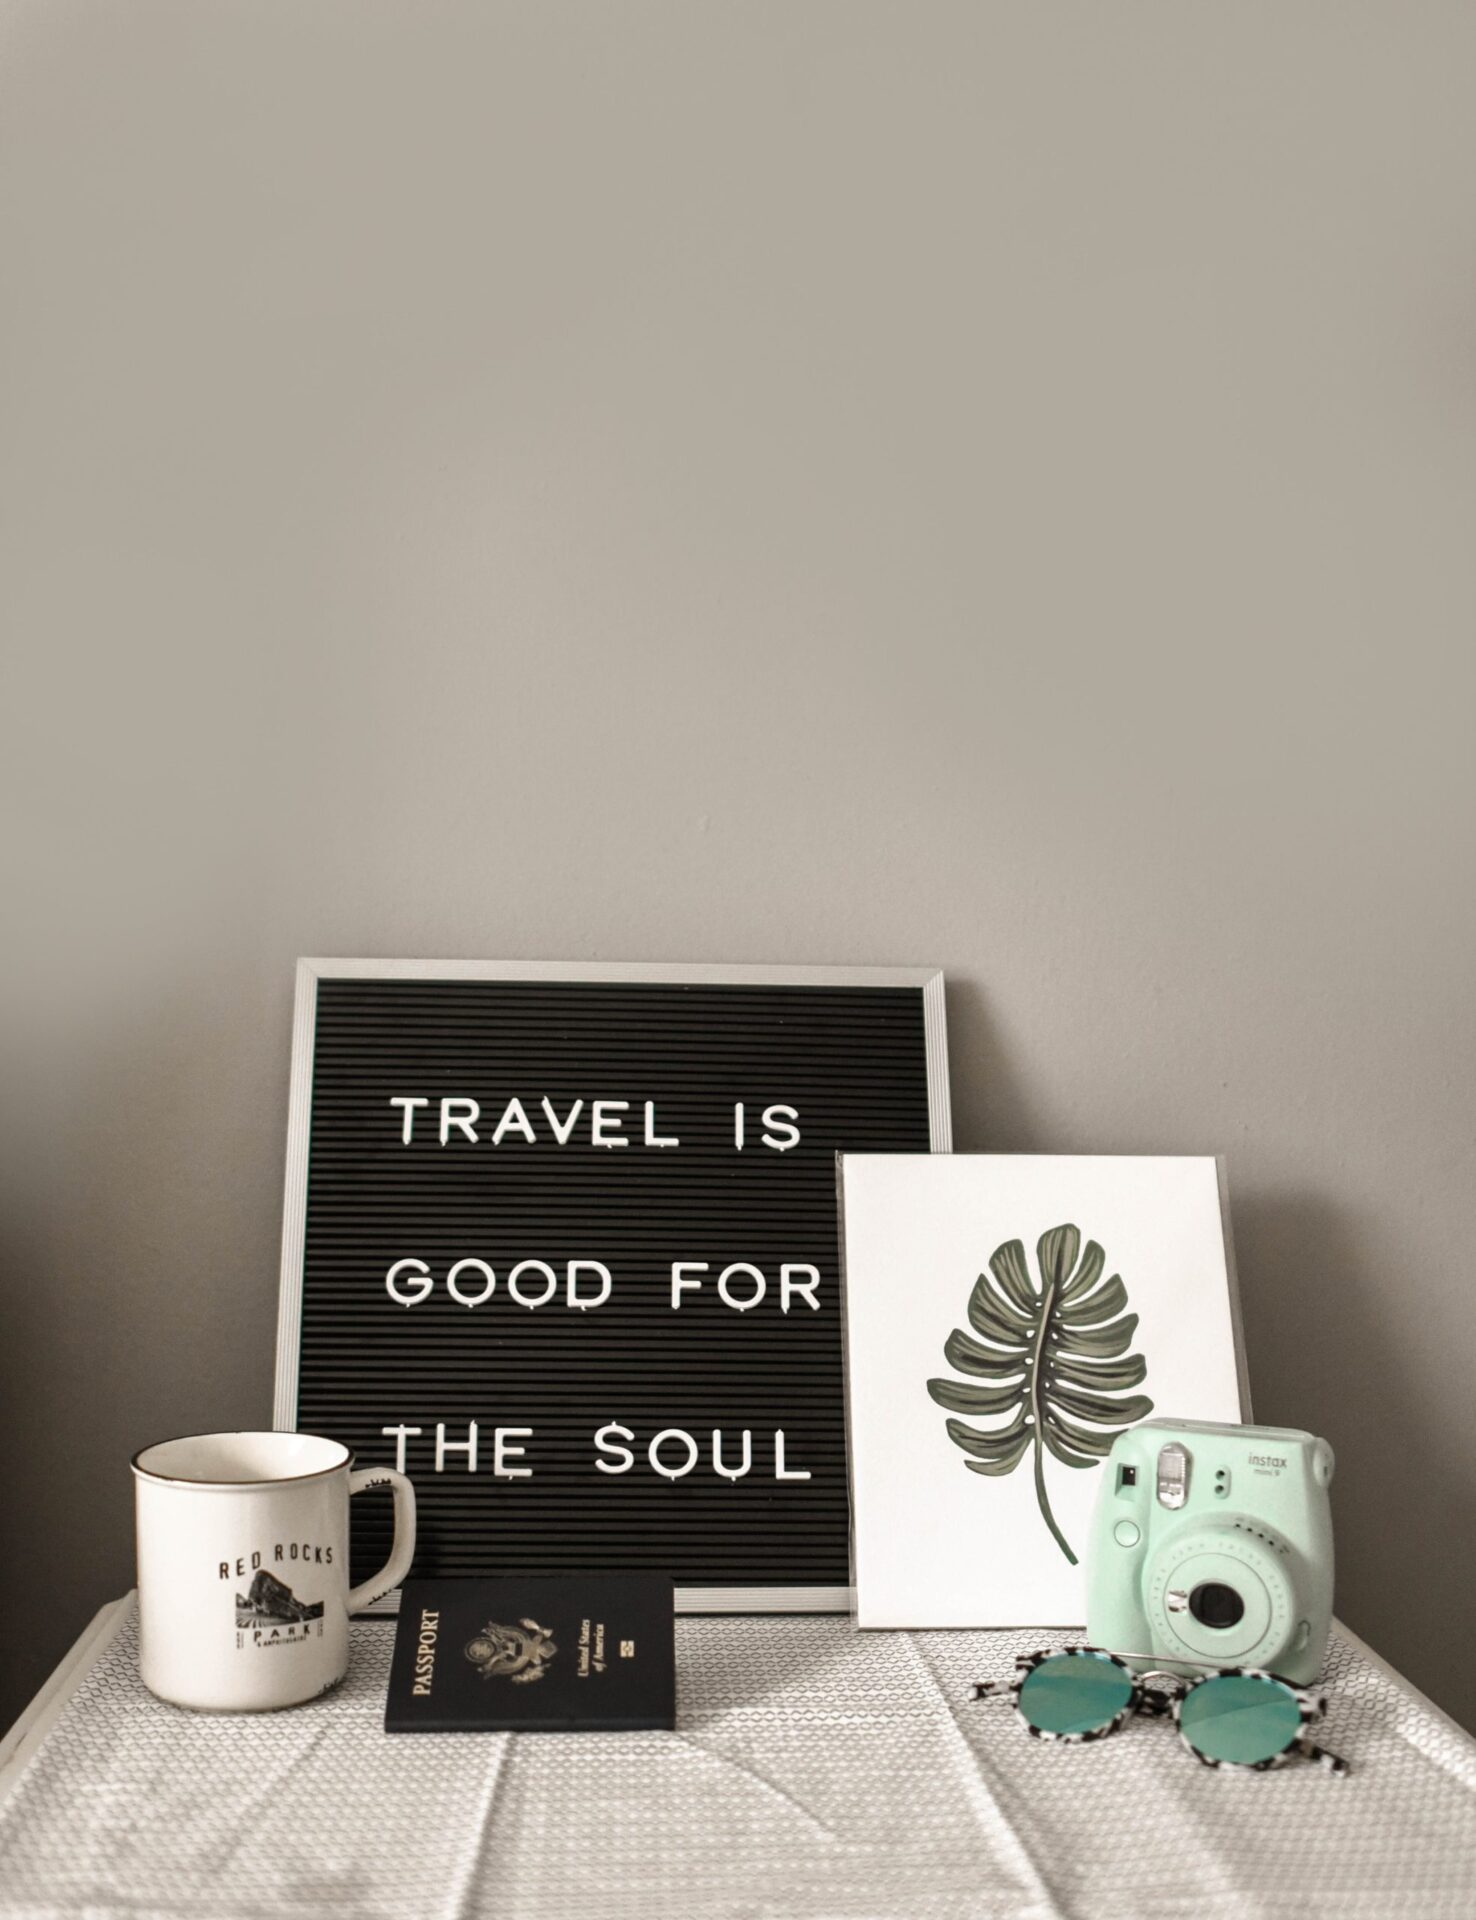 Travel is good for the soul photo